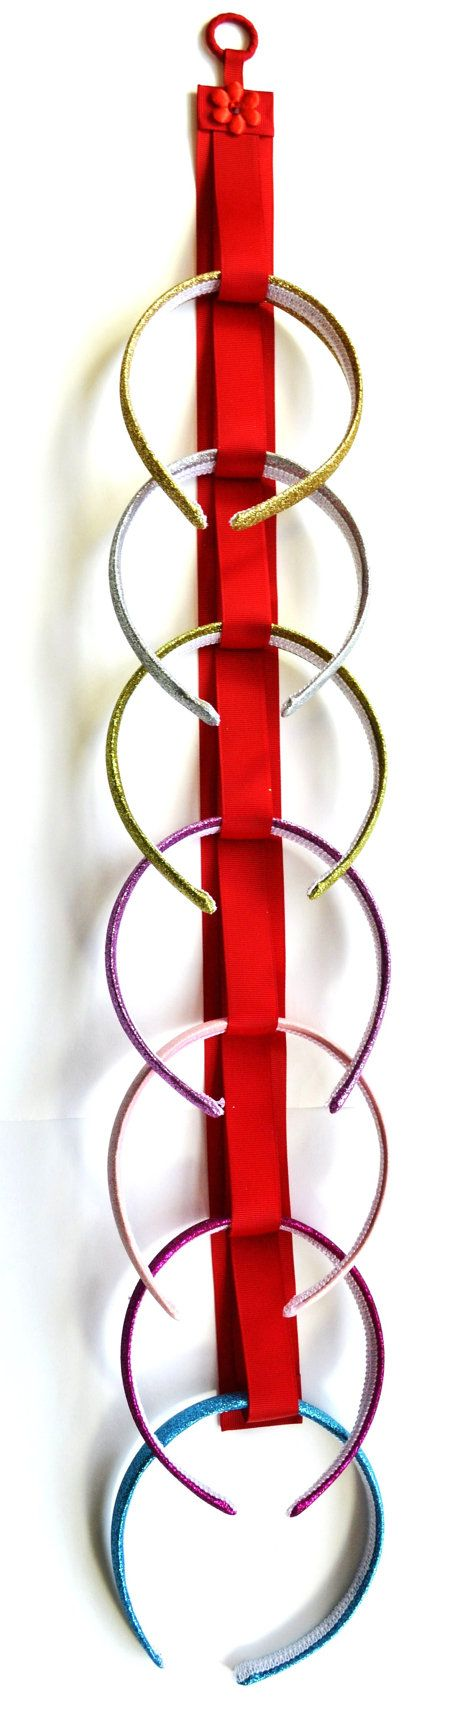 HEADBAND HOLDER Boutique Handmade Ribbon by FunnyGirlDesigns